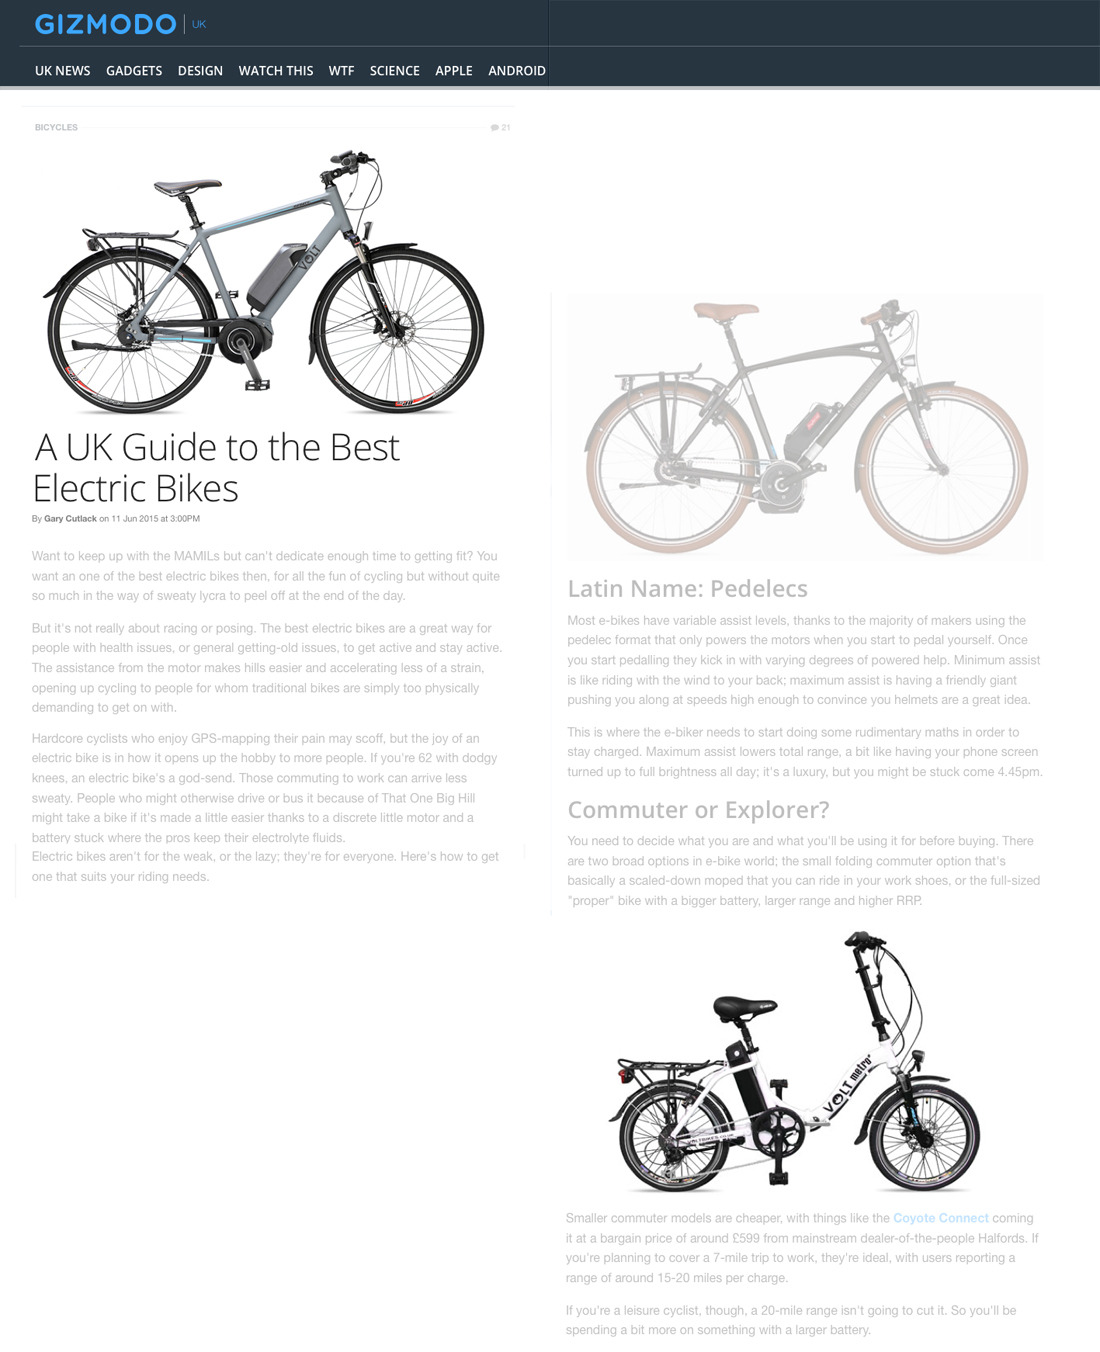 VOLT e-bikes: infinity and metro featured in Gizmodo article